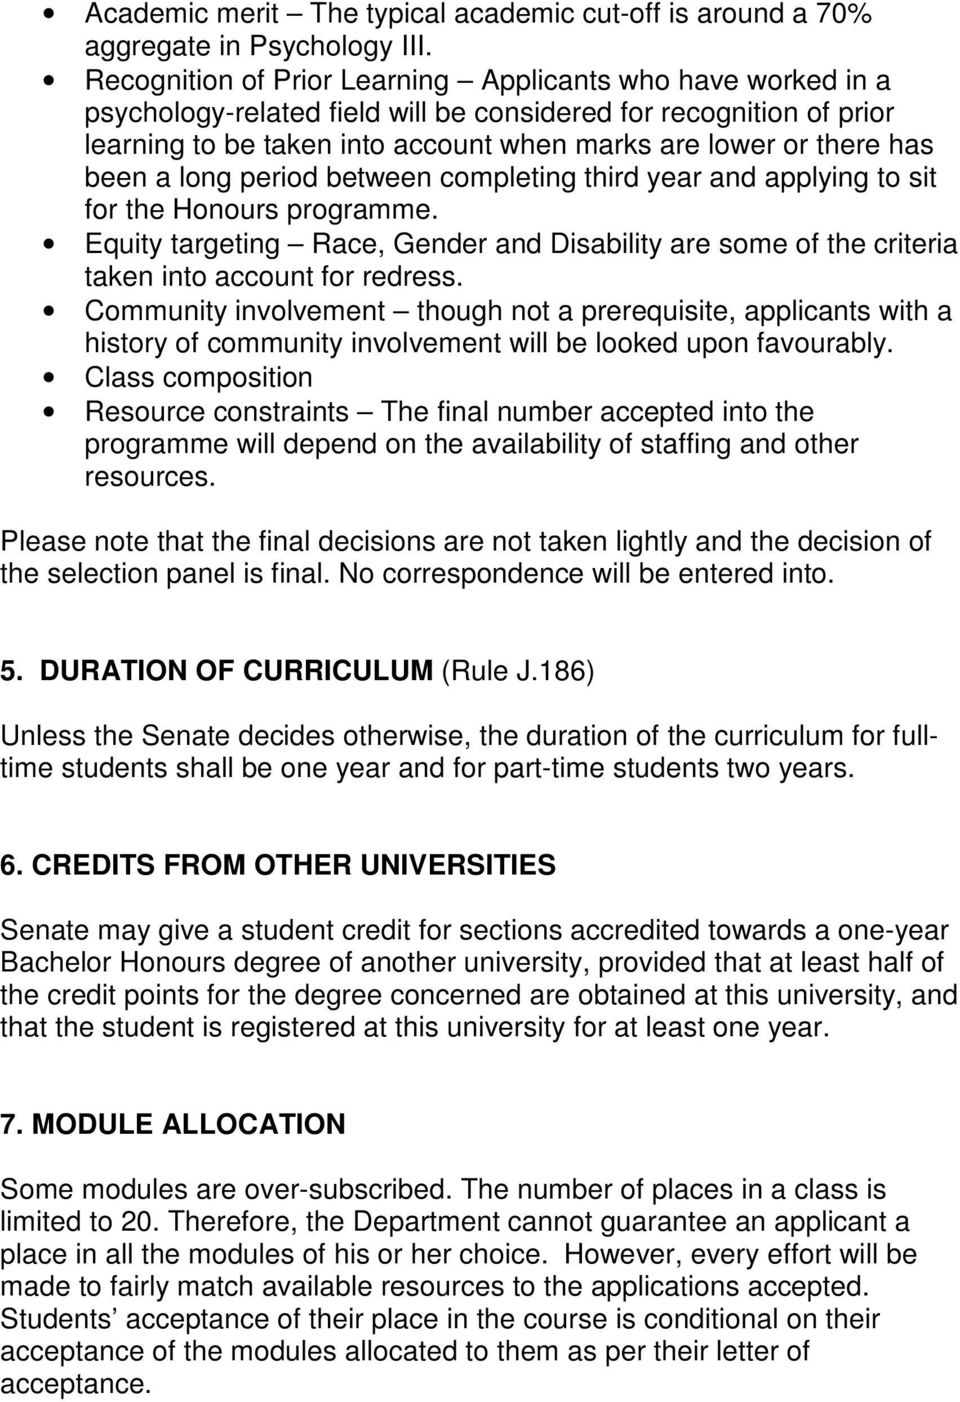 been a long period between completing third year and applying to sit for the Honours programme. Equity targeting Race, Gender and Disability are some of the criteria taken into account for redress.